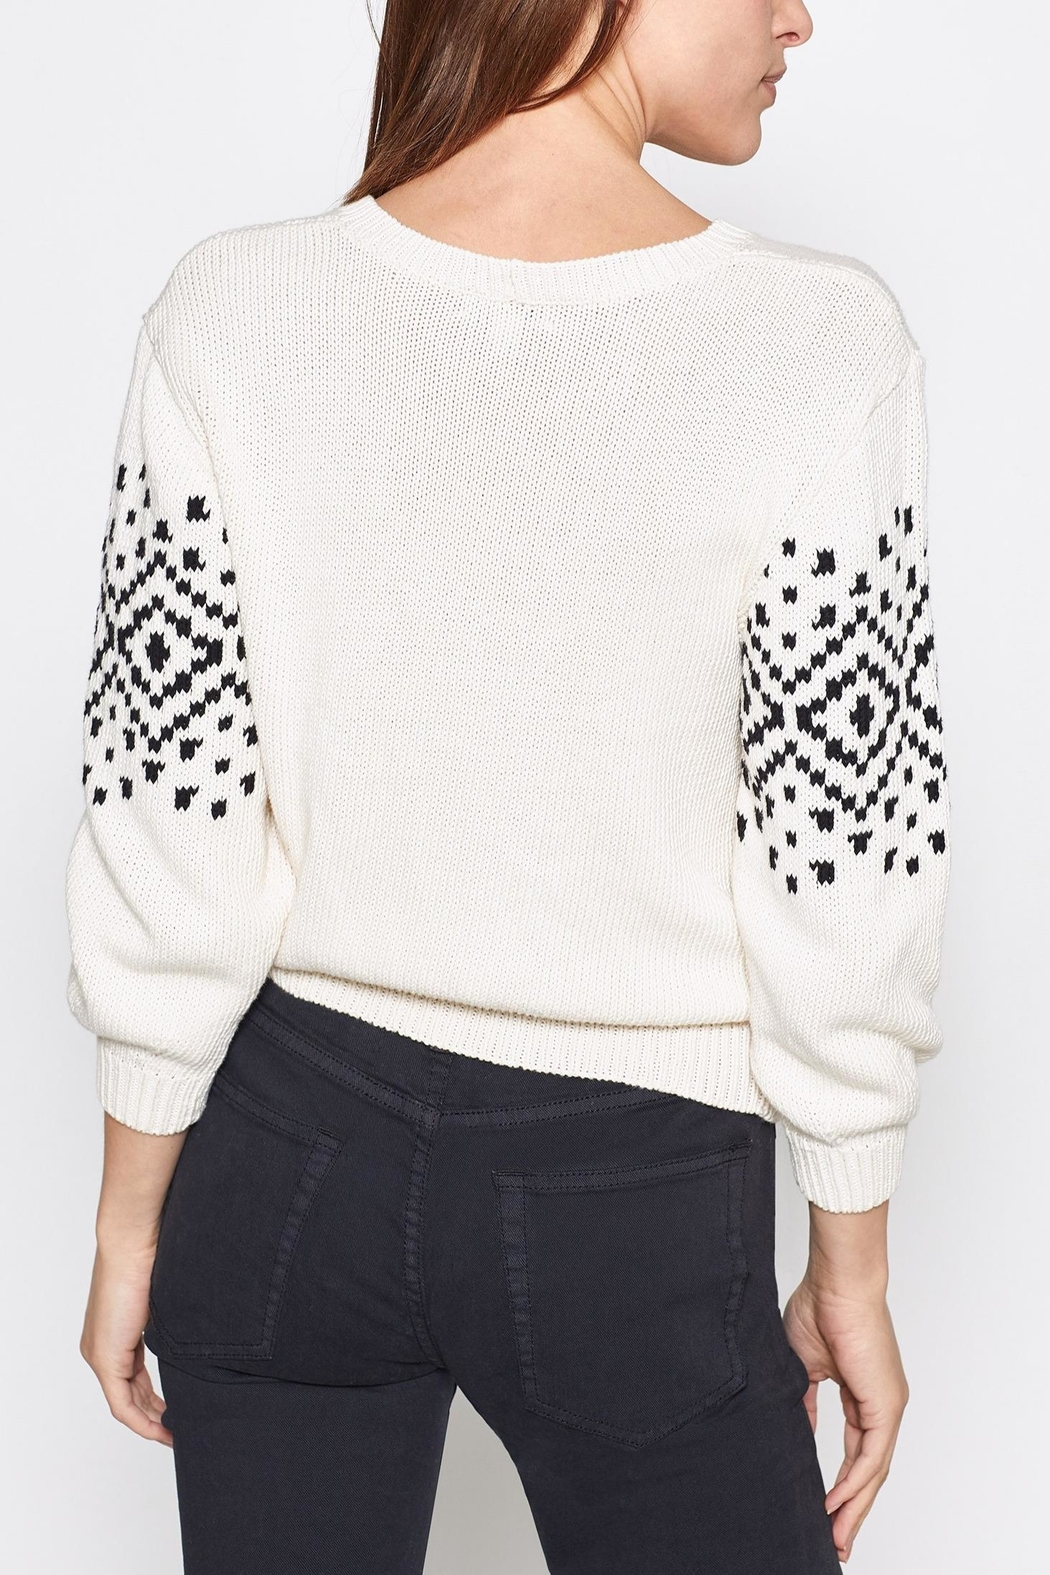 Joie Talena Sweater - Back Cropped Image